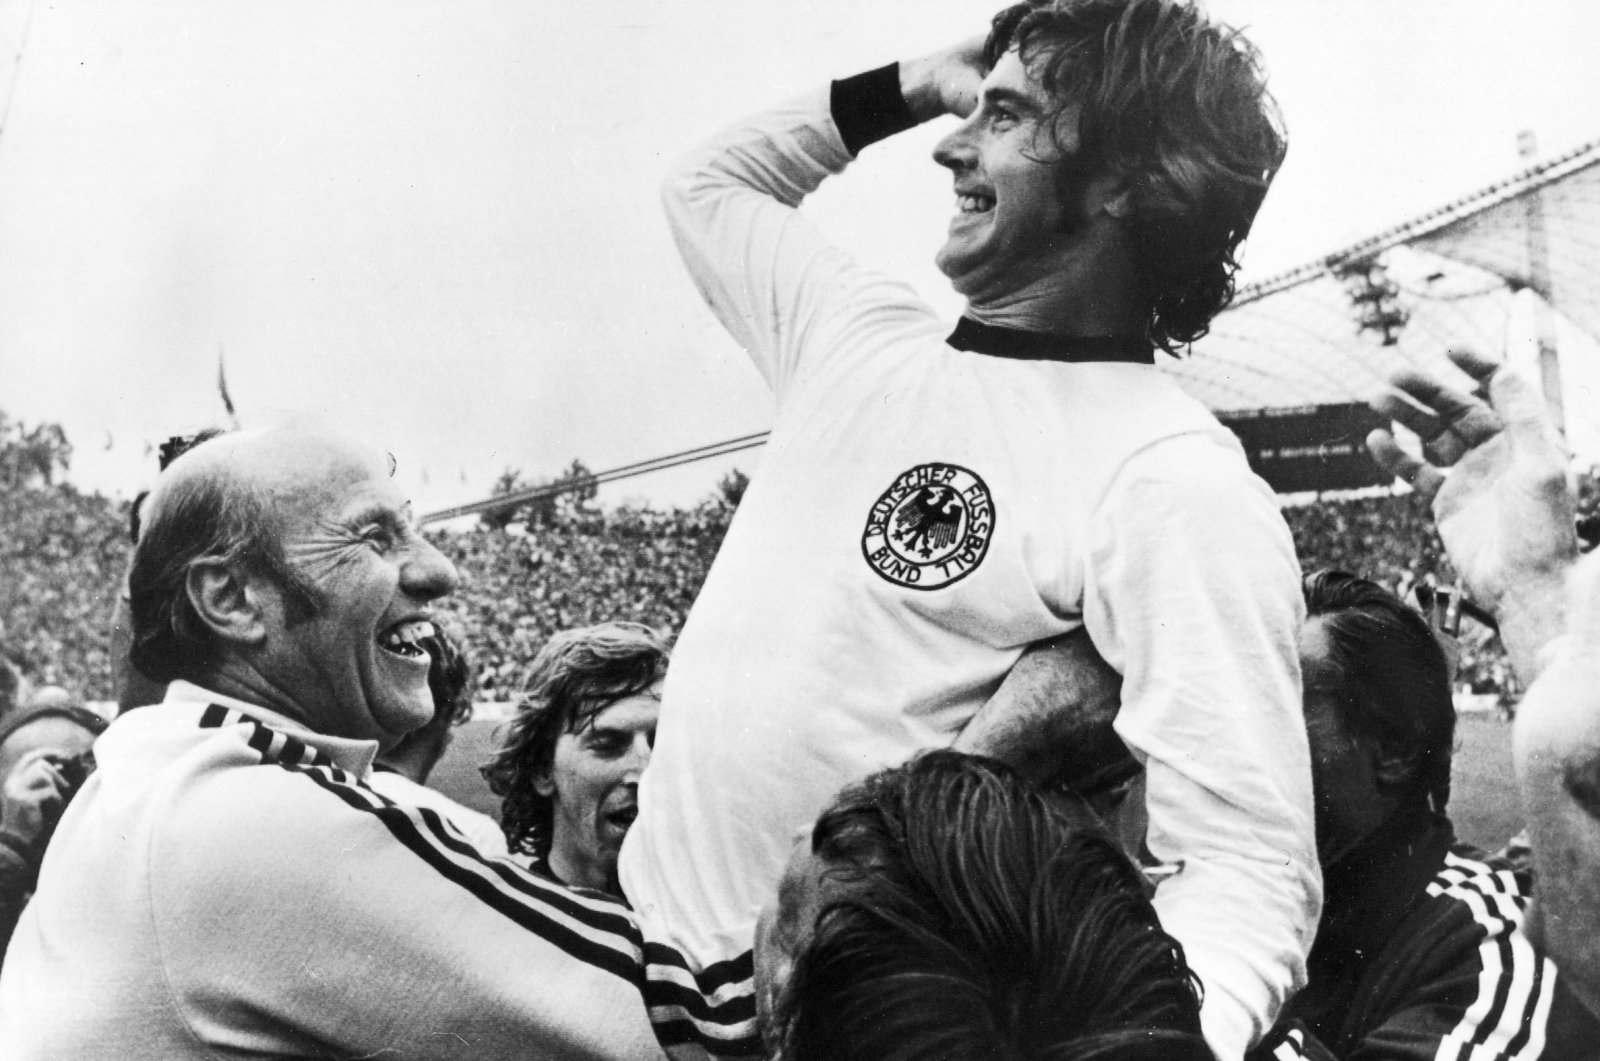 GerdMuller(R)celebrating with German head coach Helmut Schoen (L)after winning the FIFA1974 World Cup final against the Netherlands in Munich, Germany, July 7, 1974. (EPA Photo)